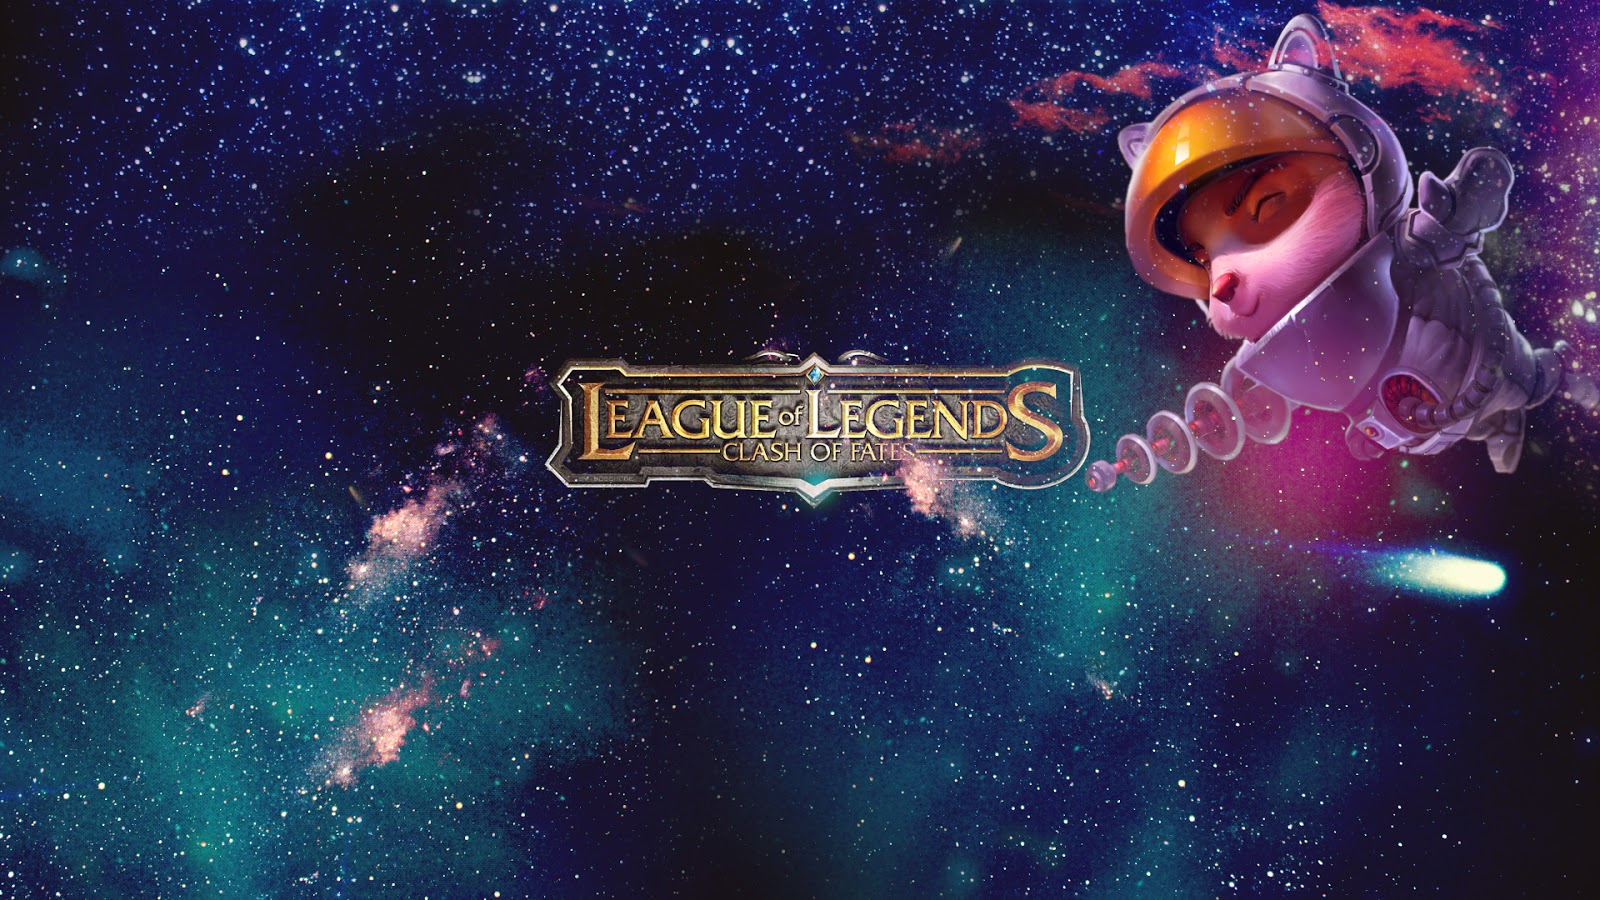 Teemo League of Legends Wallpaper, Teemo Desktop Wallpaper